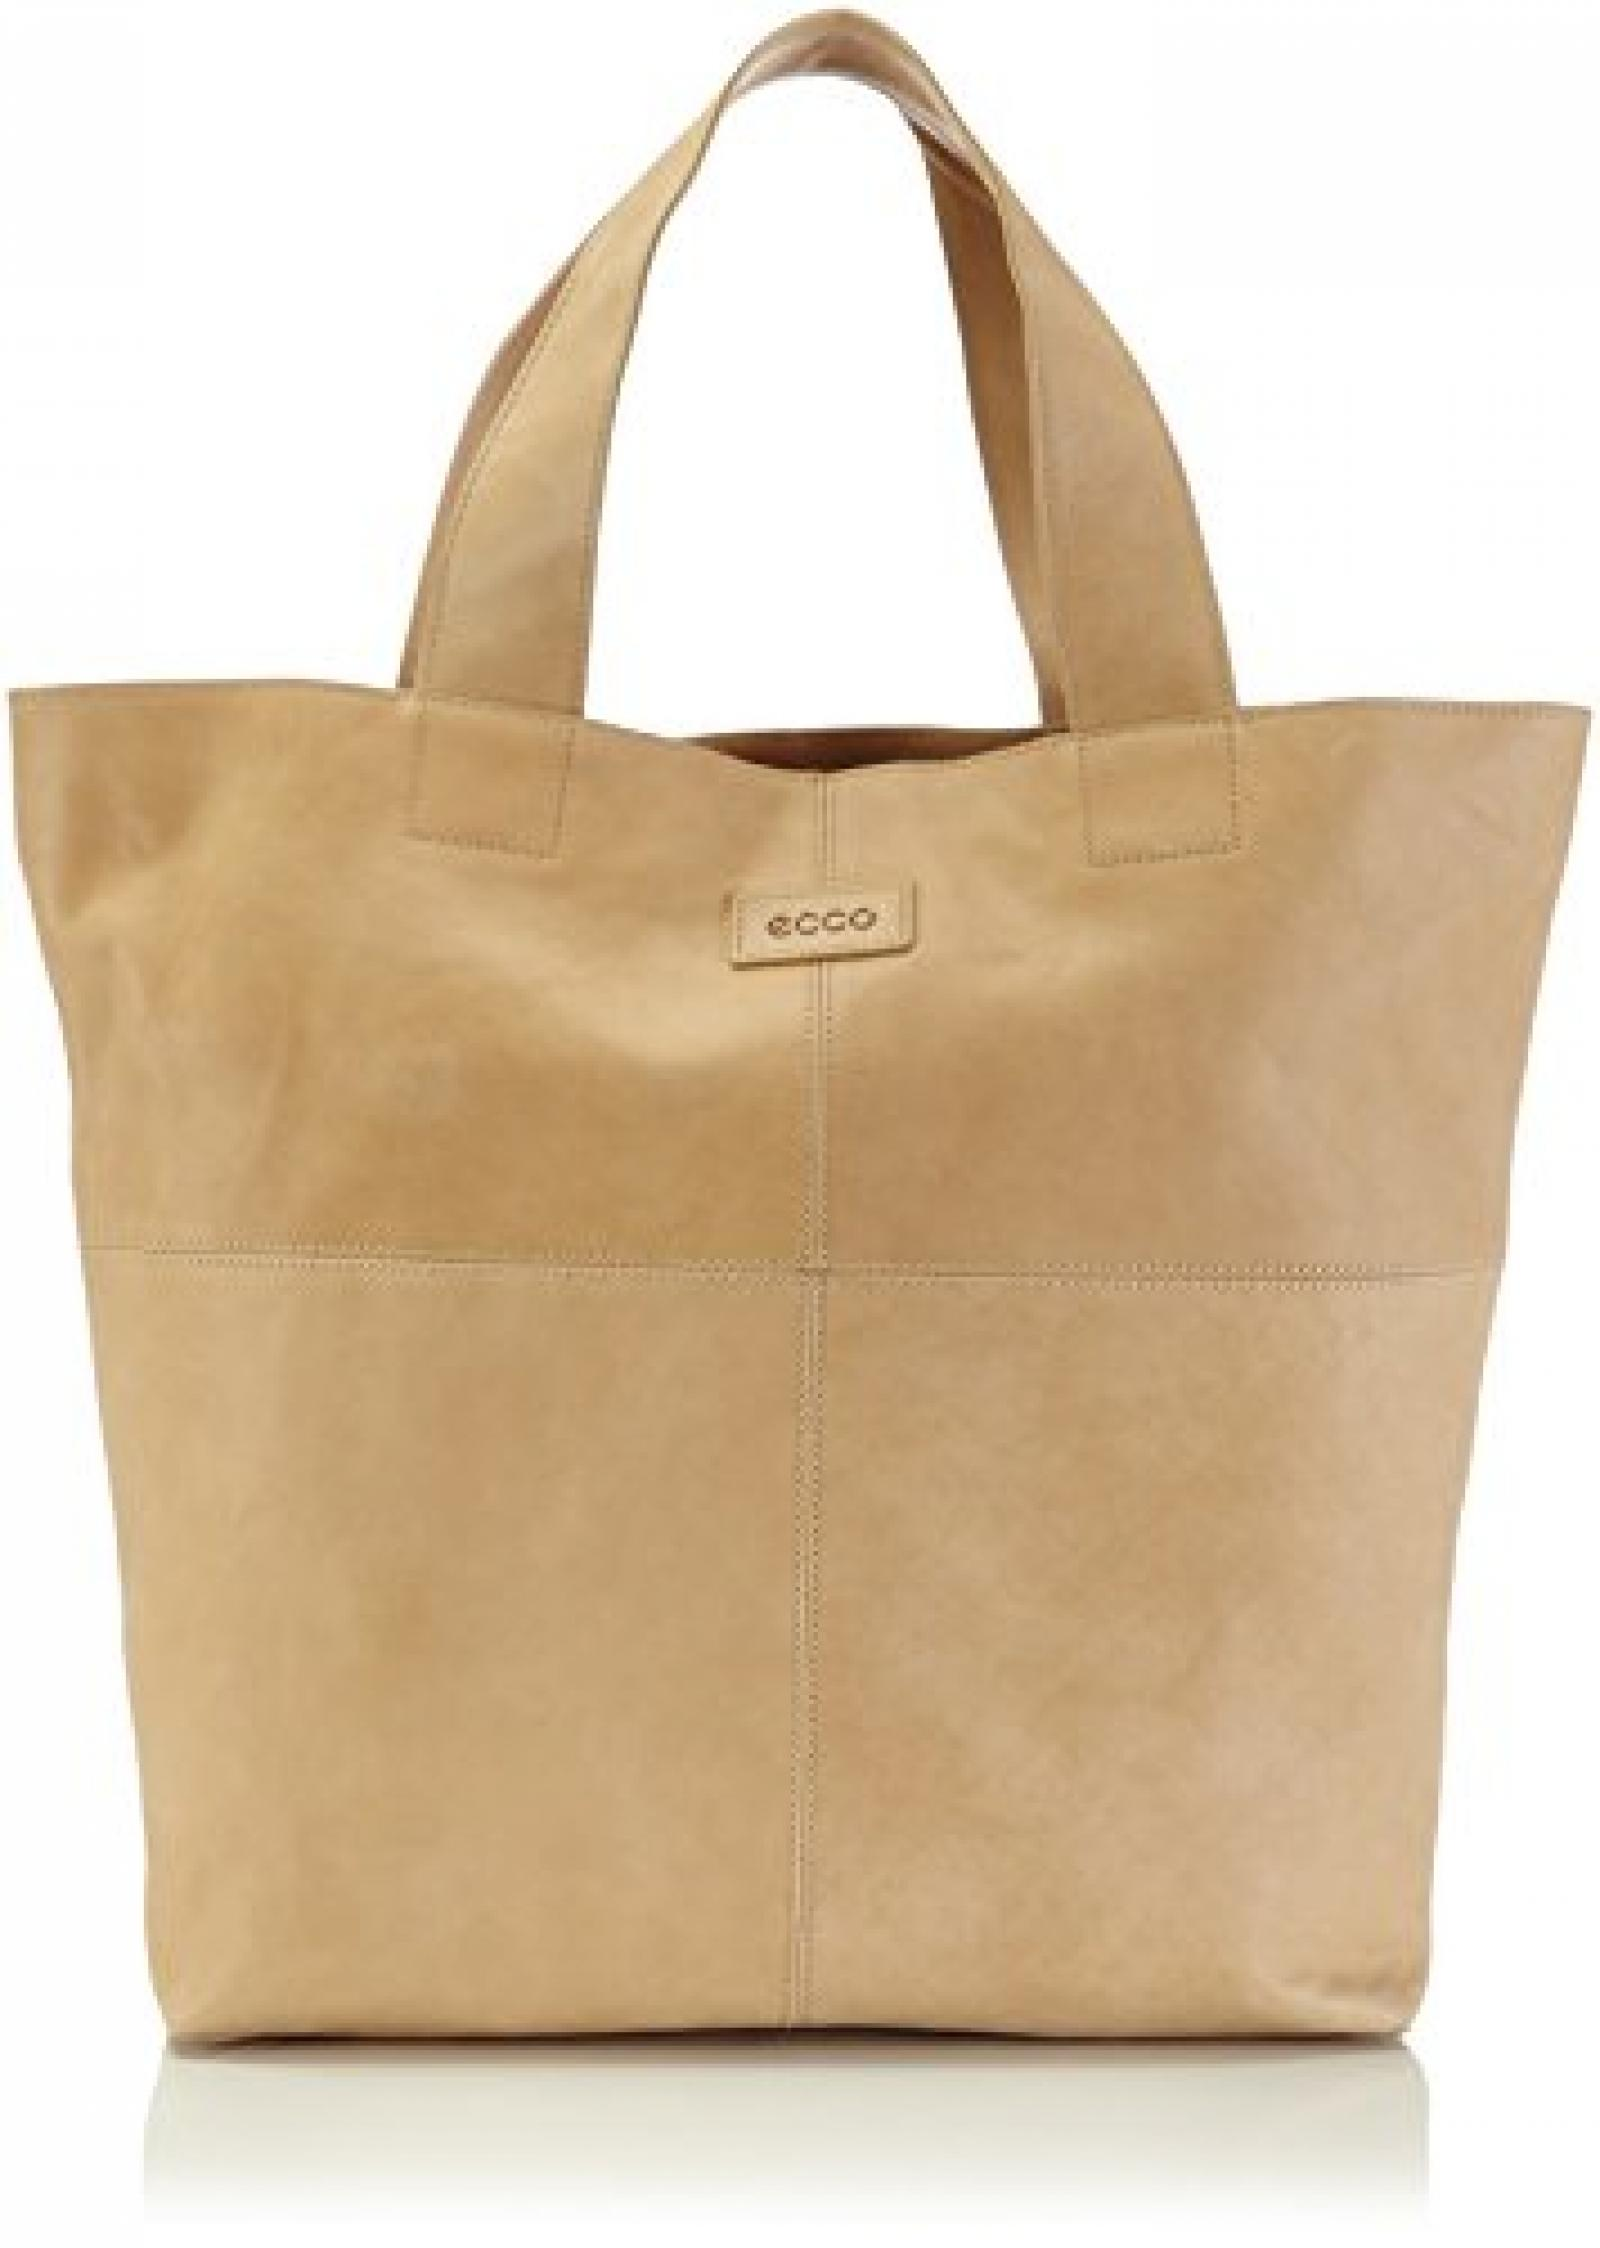 Ecco Barra Shopper 9104526 Damen Shopper 1x1x1 cm (B x H x T)